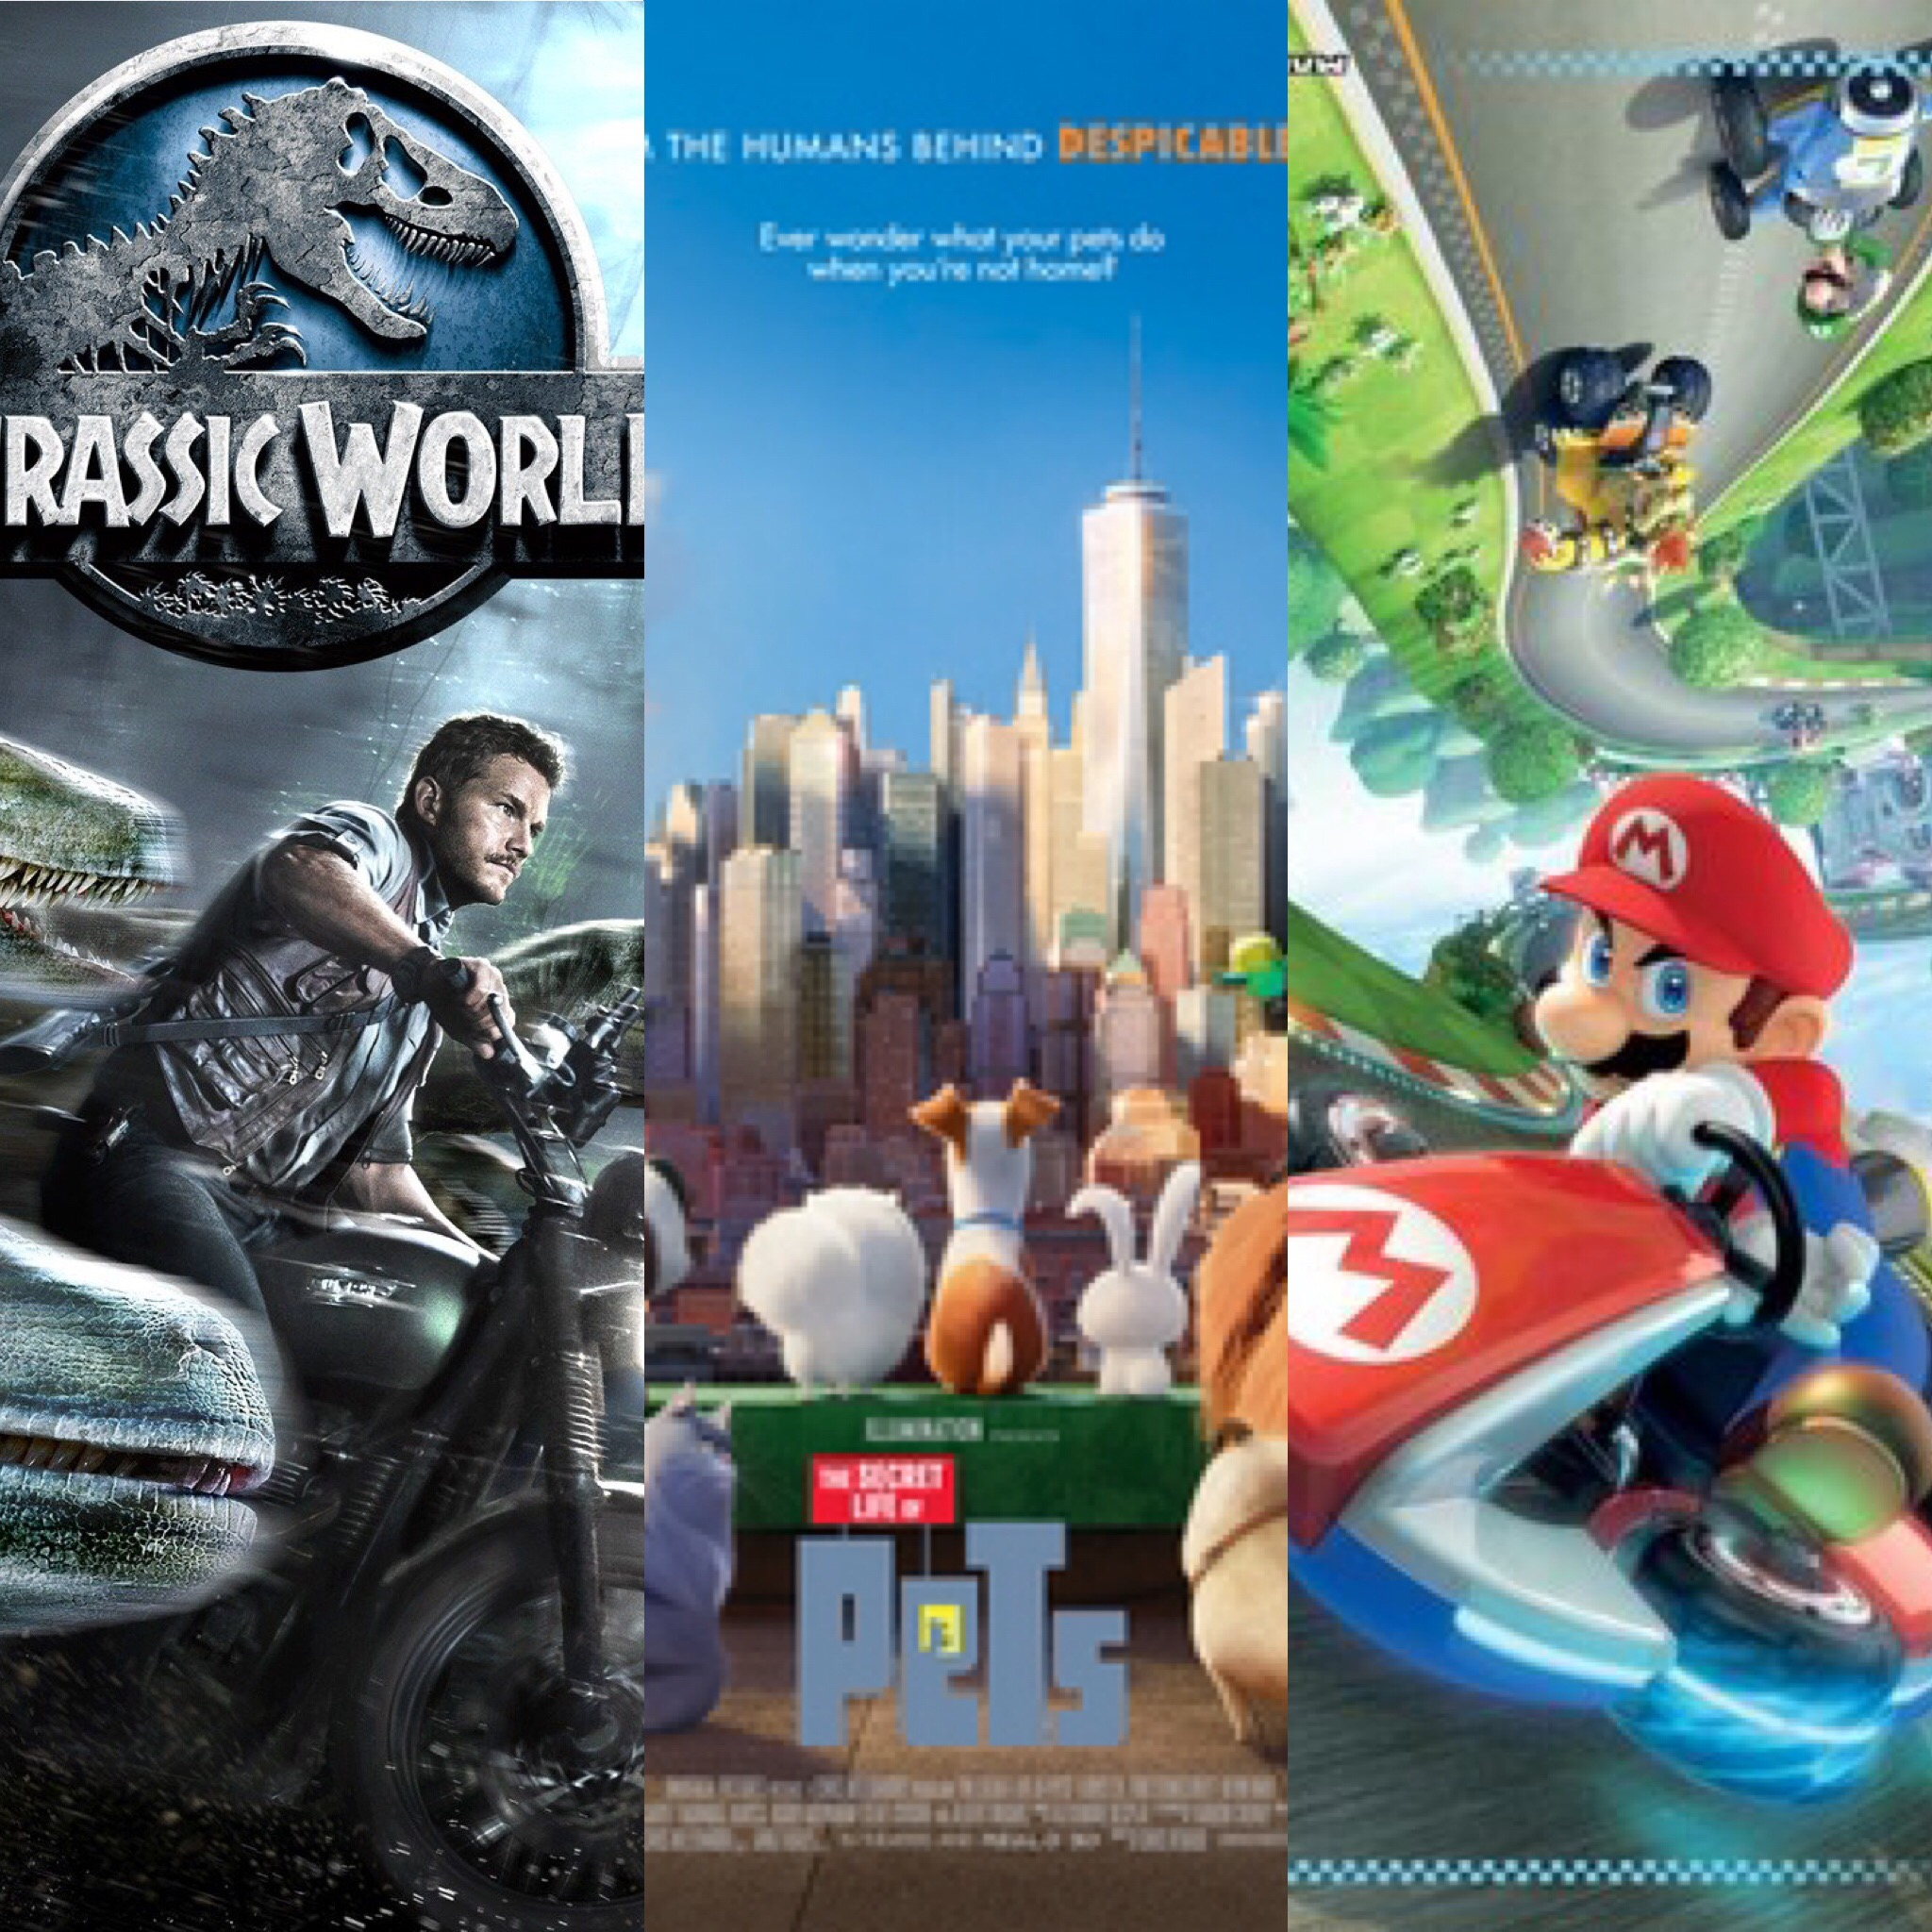 Universal Studios New Rides 2020 Universal Studios Hollywood Expansion Plans   2019, 2020 and 2021